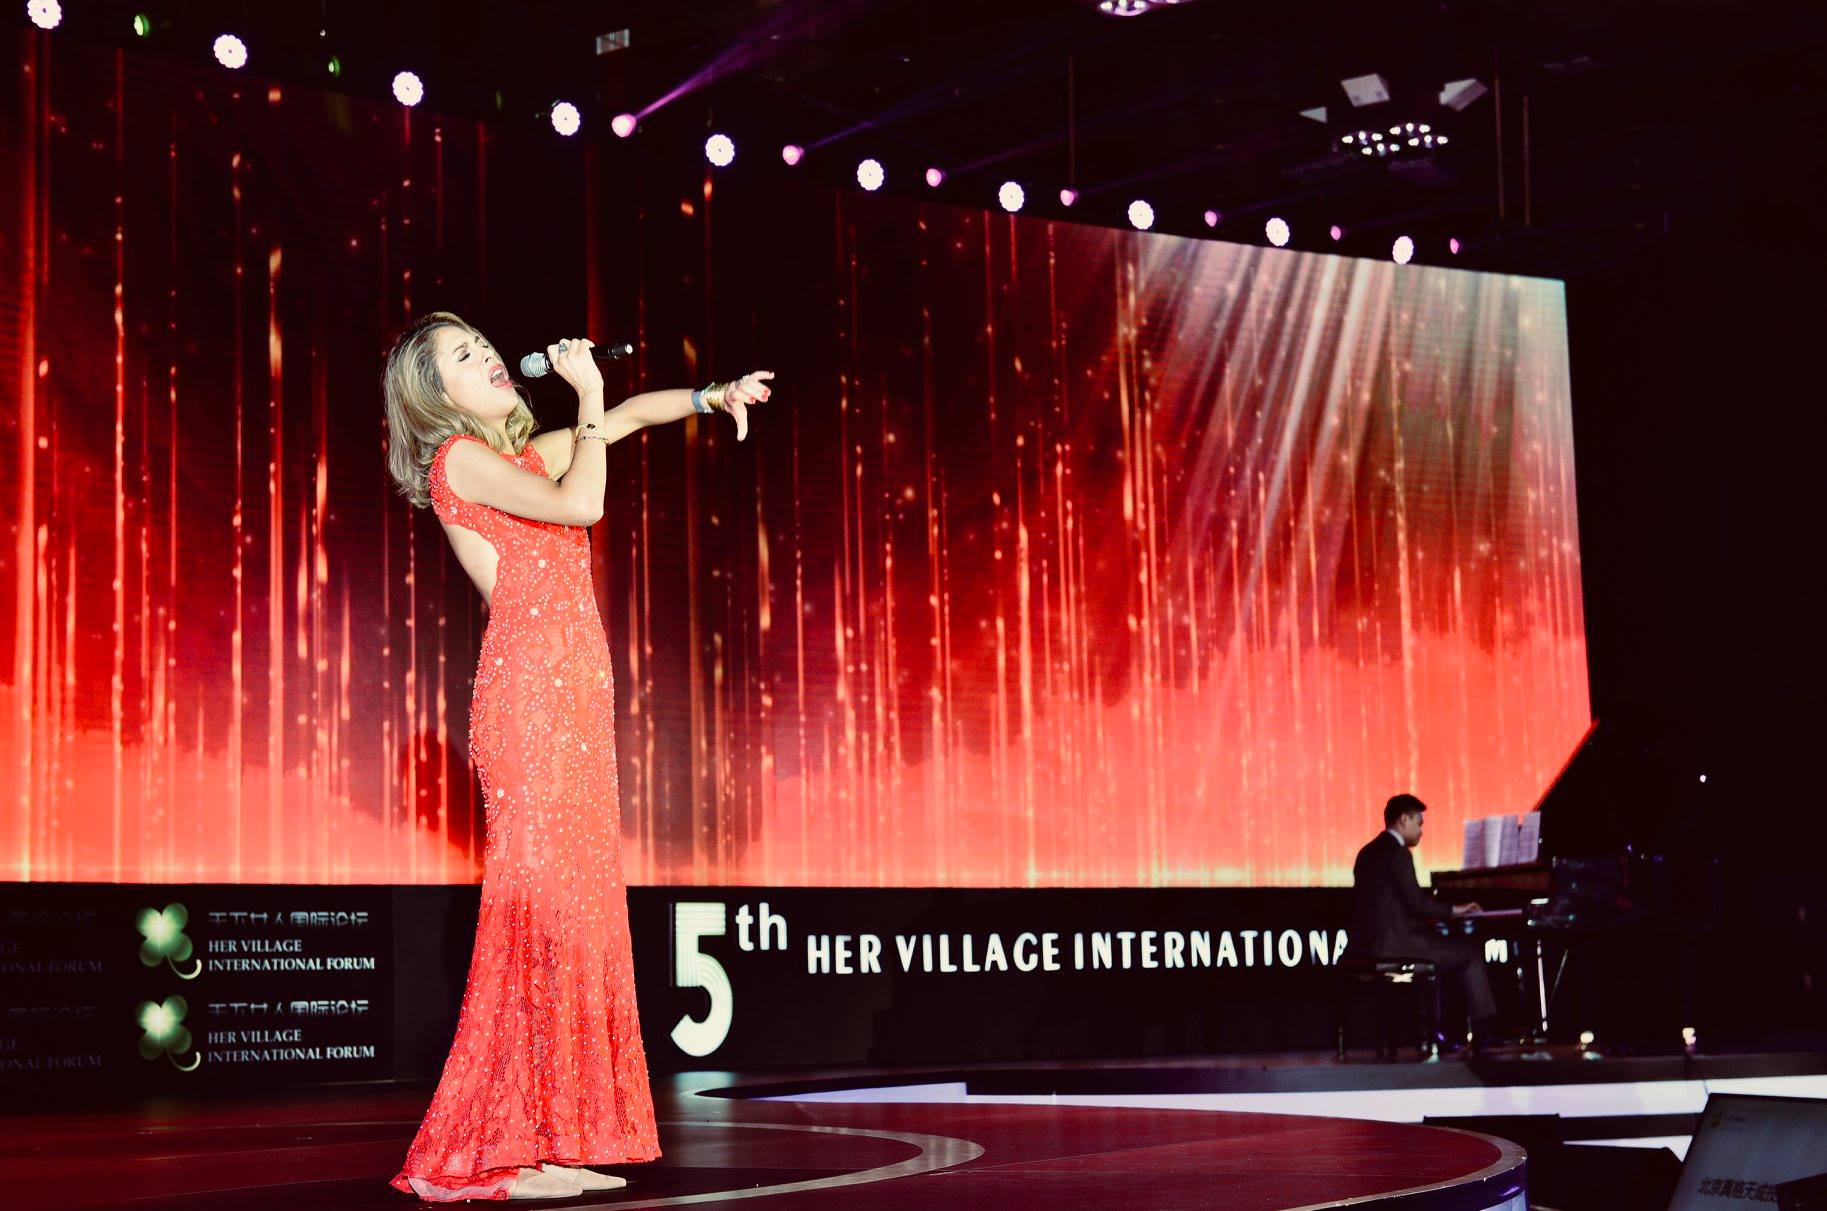 performing at Her Village International Forum in Beijing, China